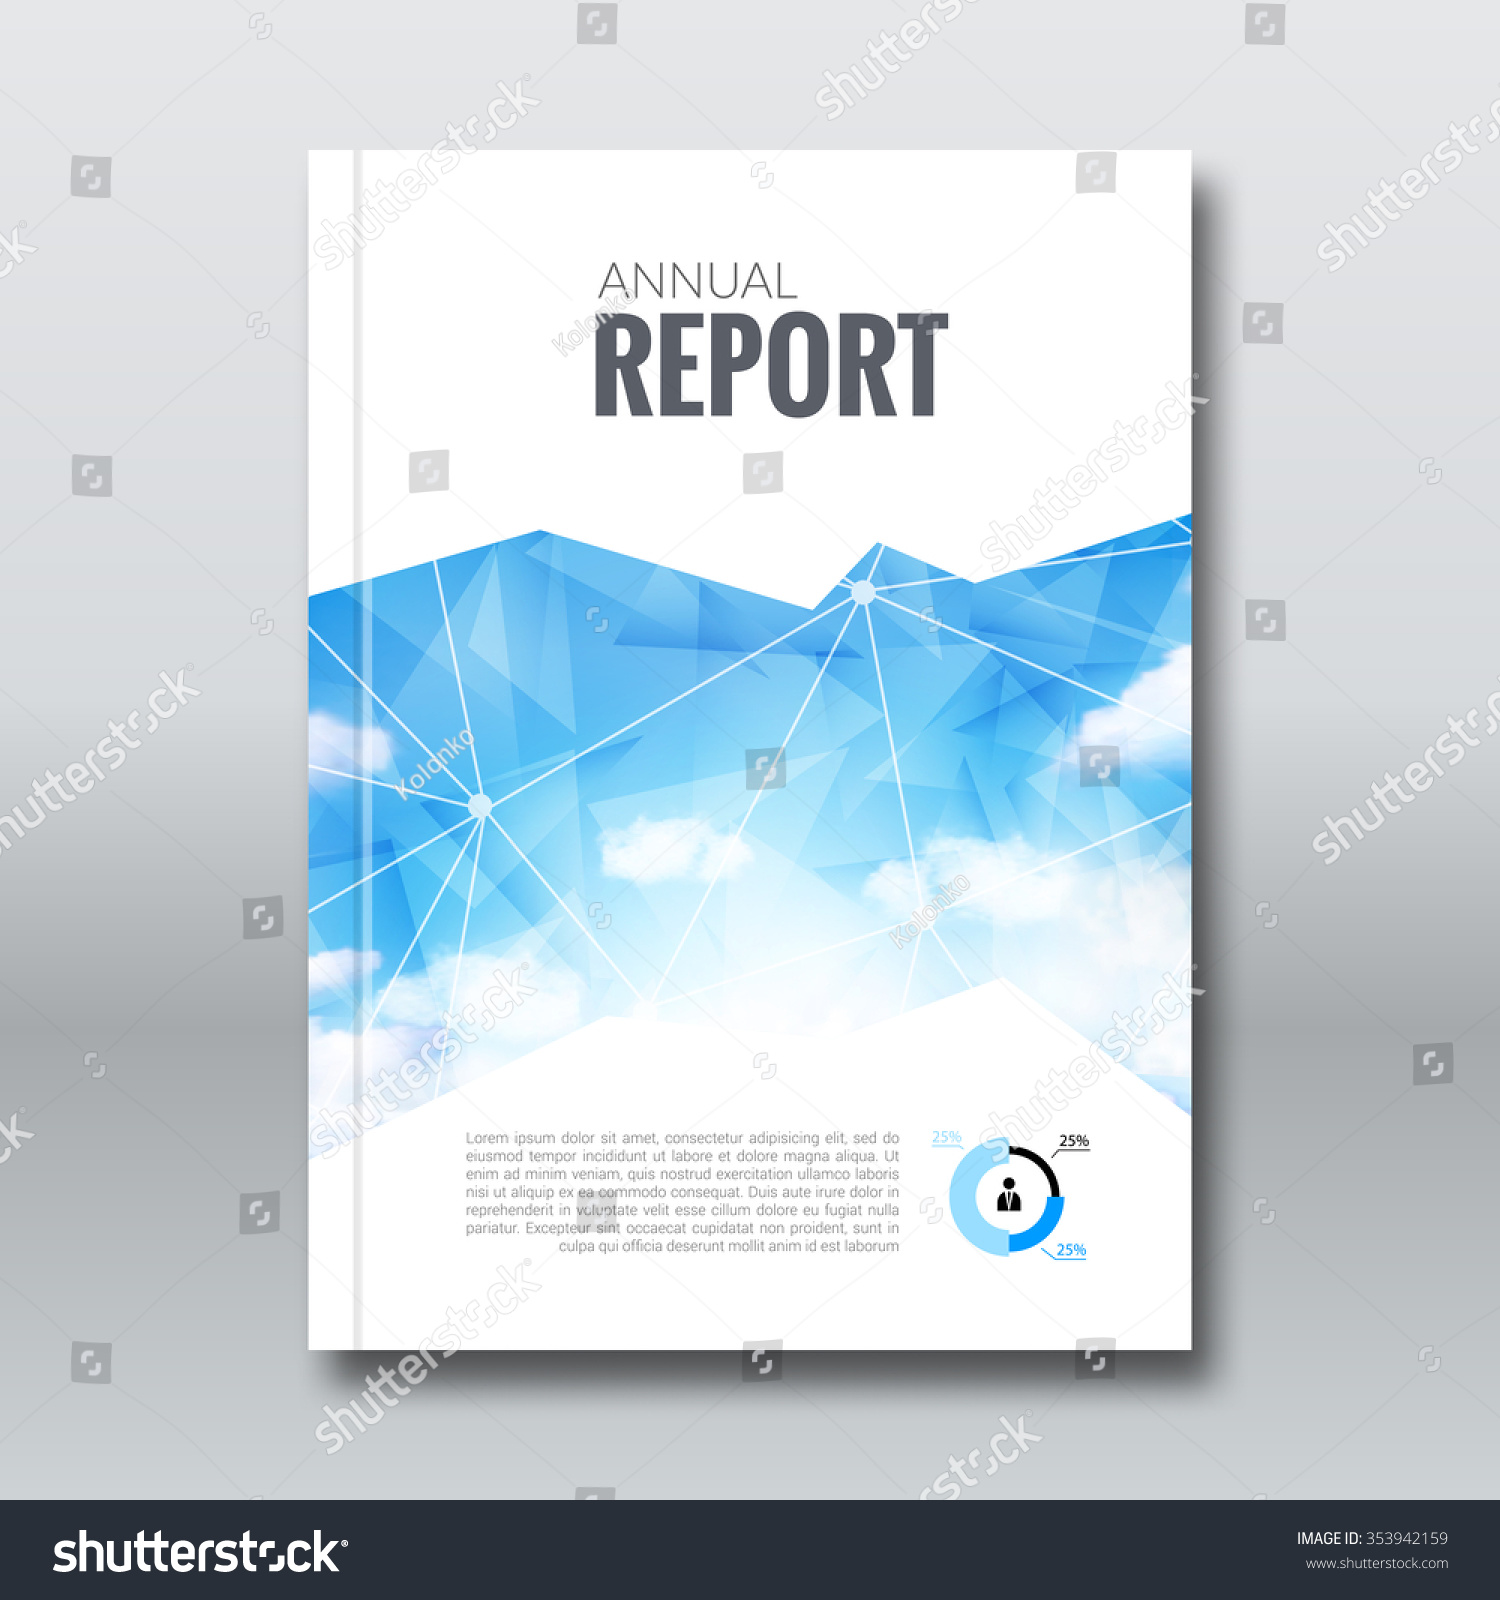 Business Book Cover Design Template : Cover report business colorful triangle polygonal stock